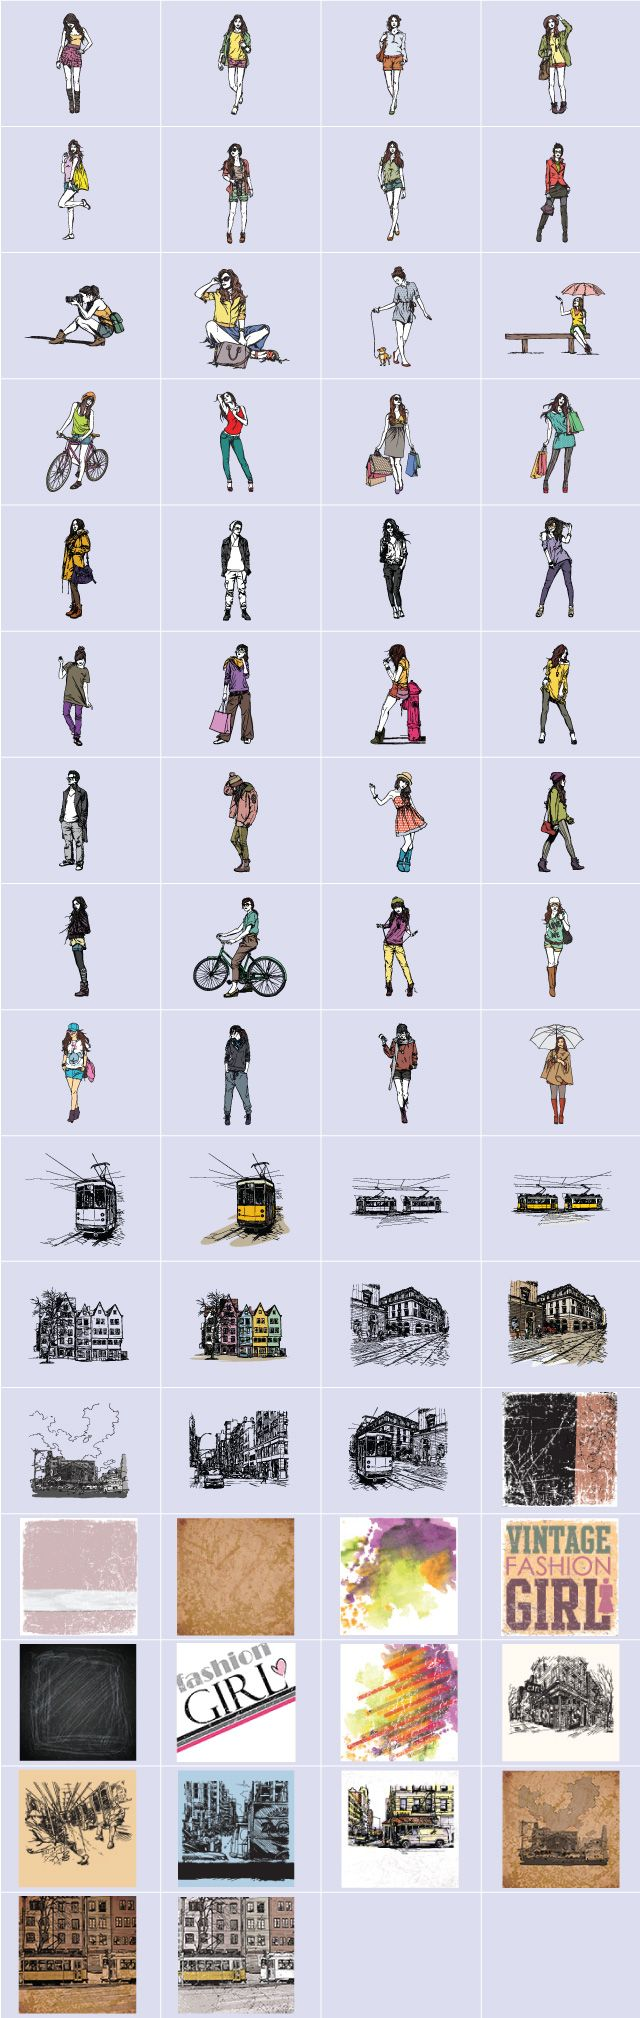 street fashion clipart package